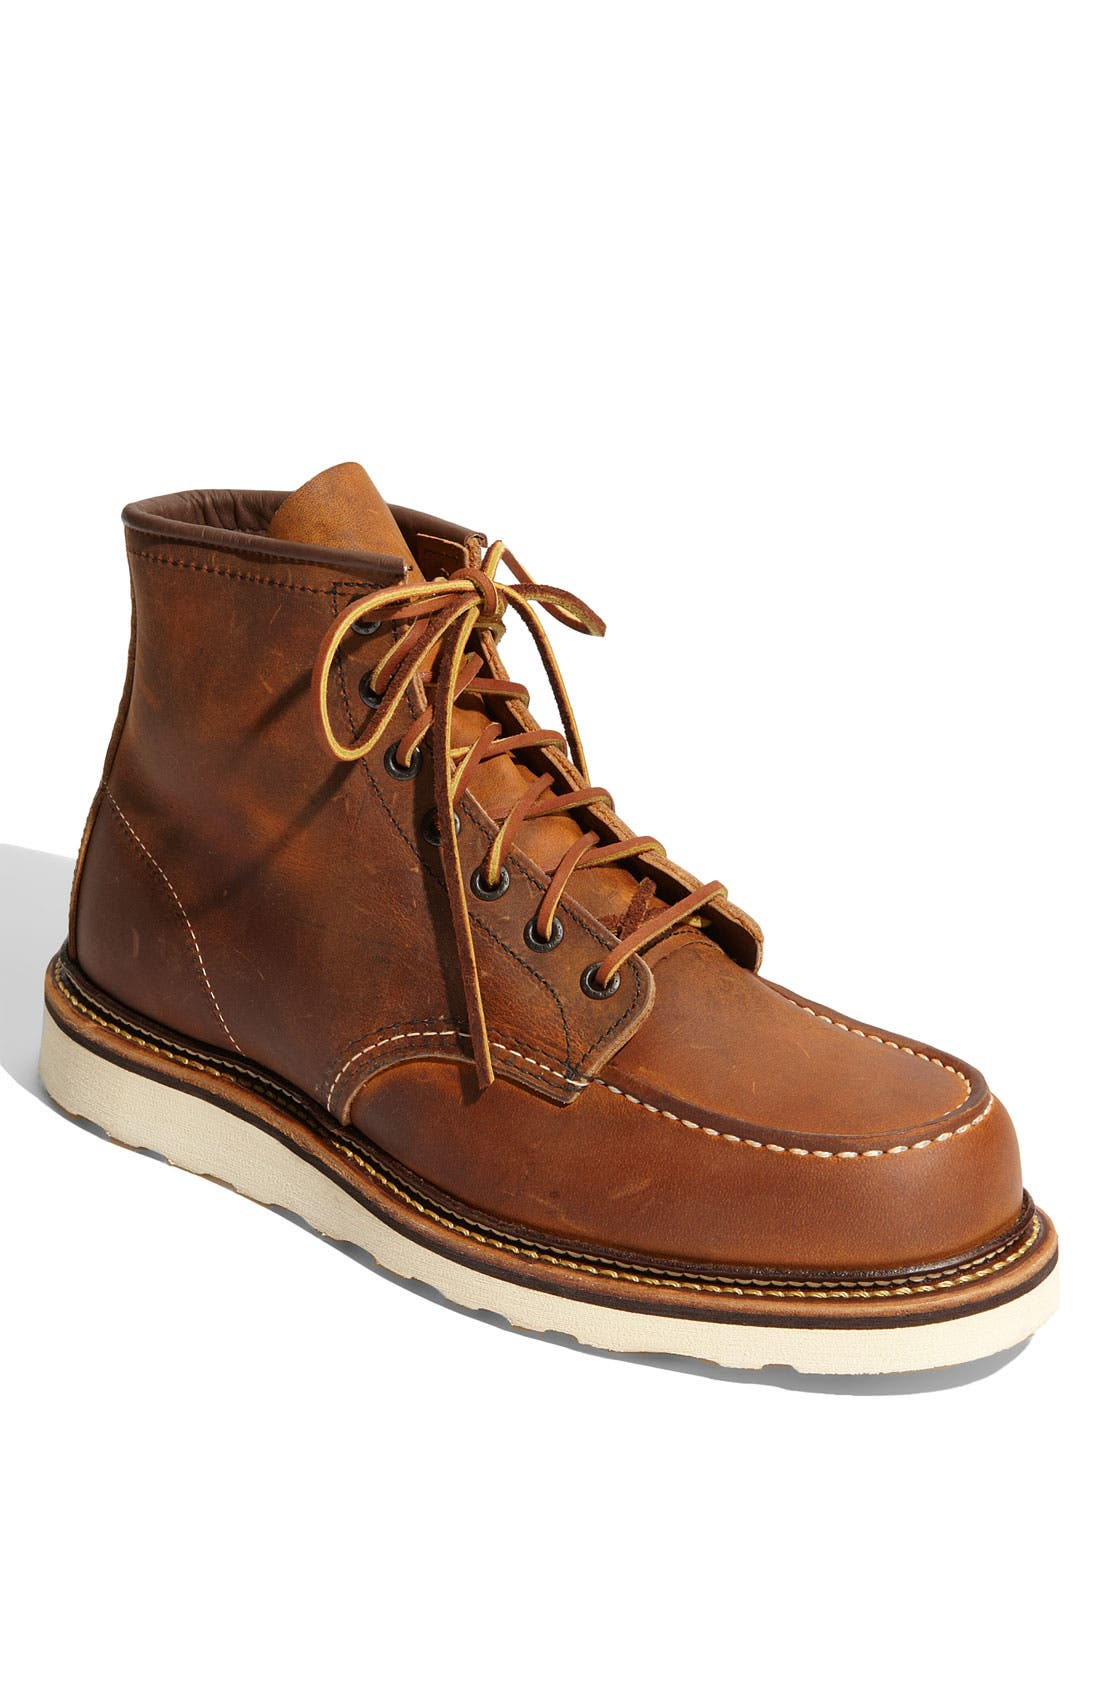 Alternate Image 1 Selected - Red Wing 1907 Classic Moc Boot (Men)